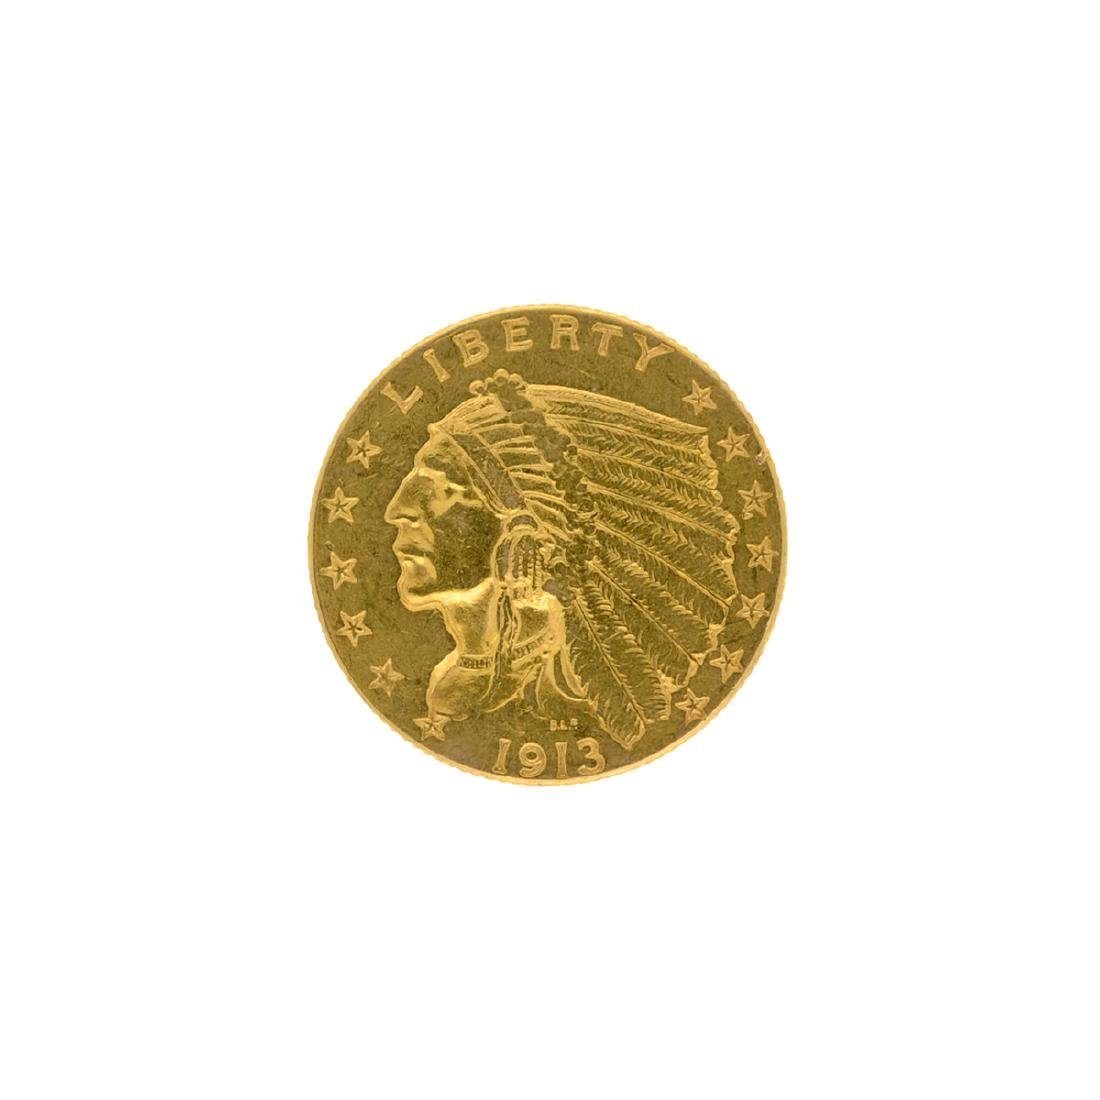 1913 $2.50 U.S. Indian Head Gold Coin